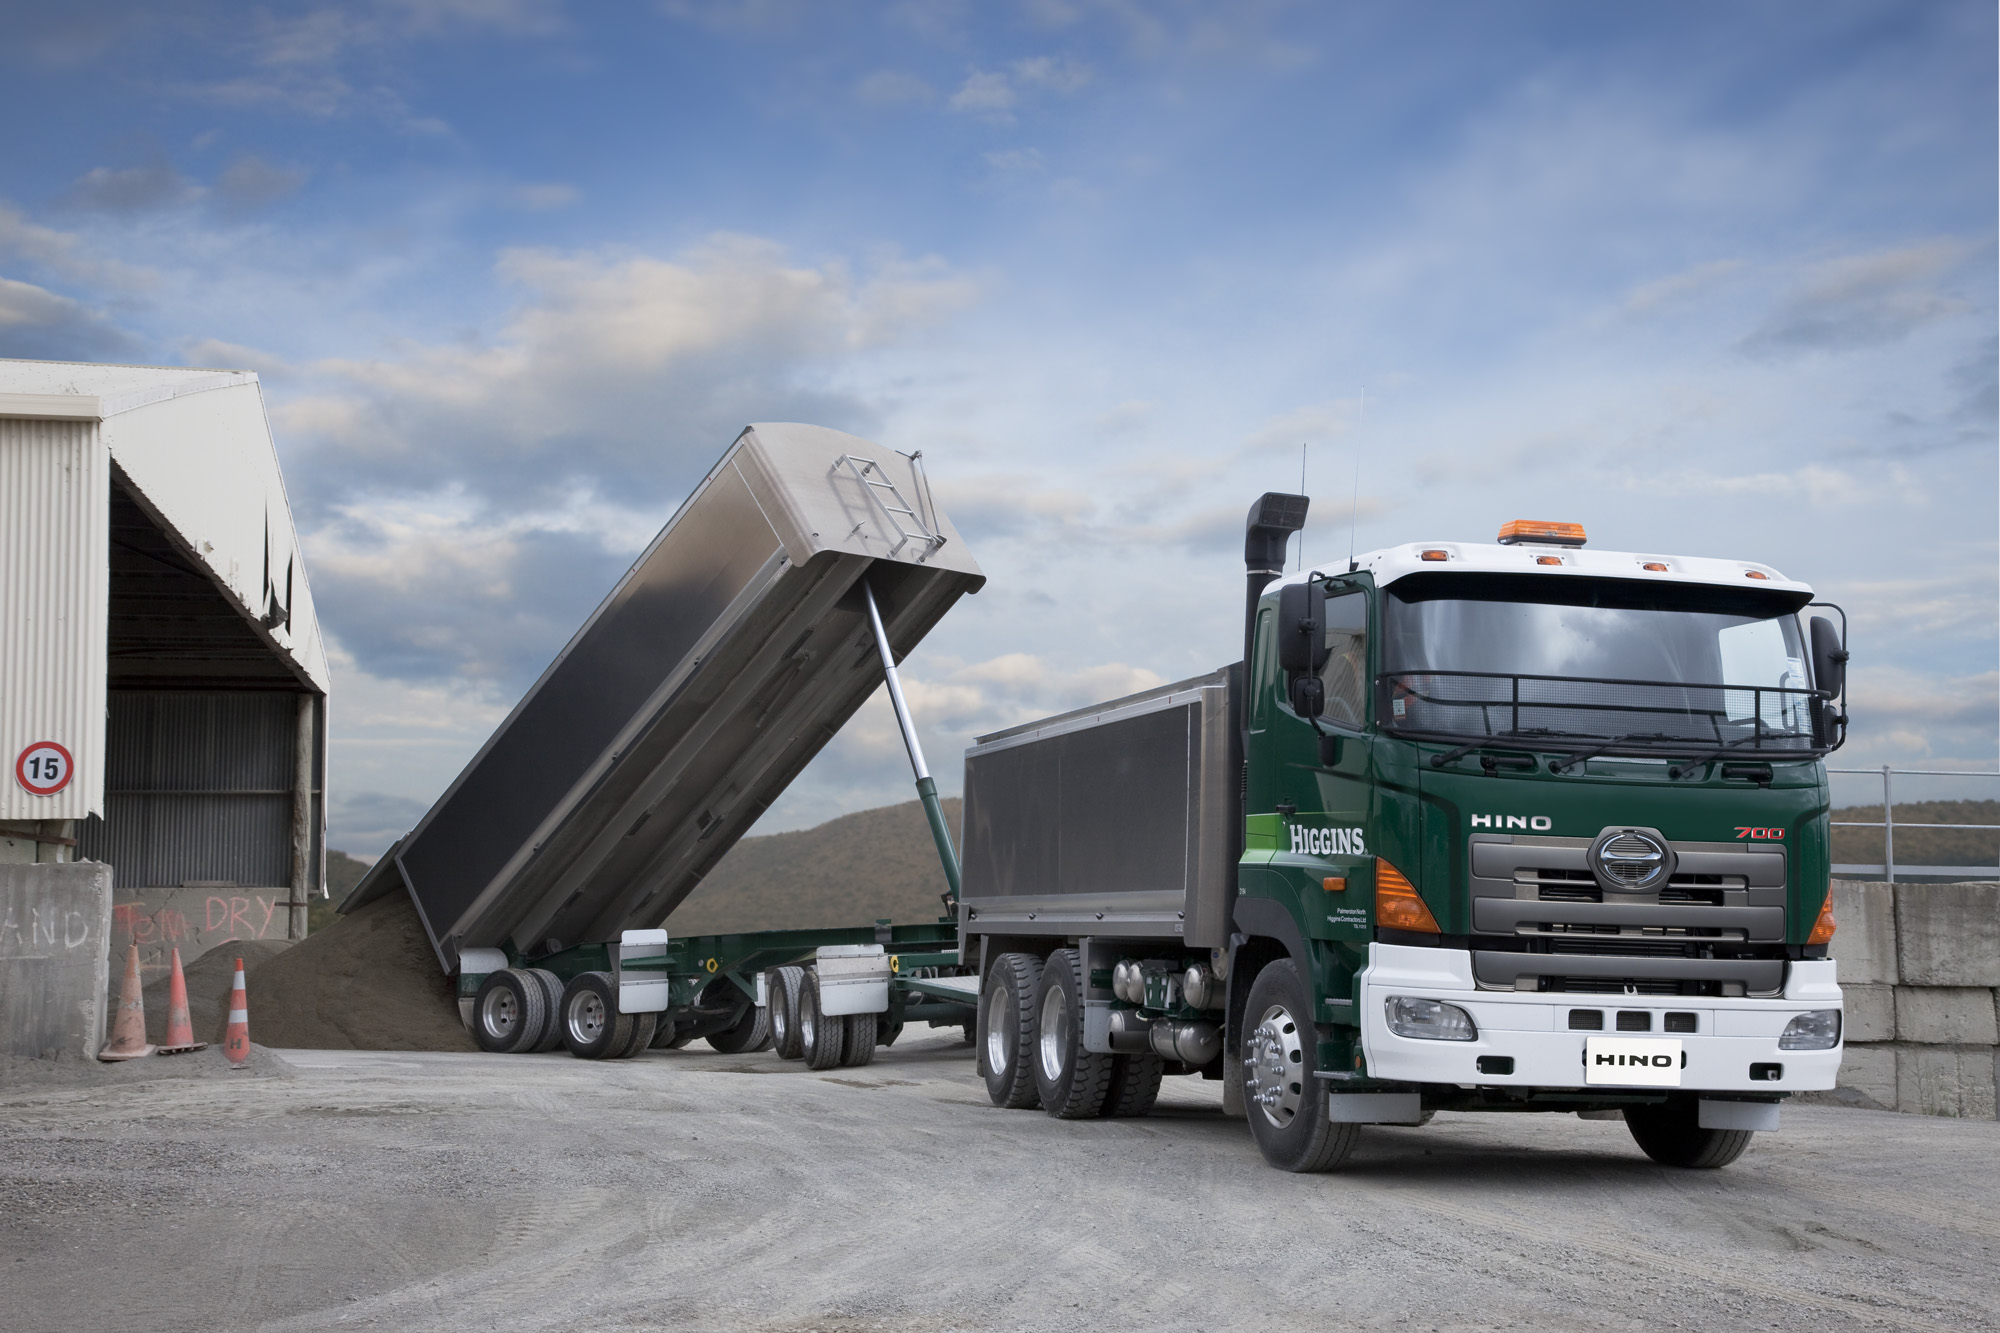 Higgins Contractors - 700 Series Tipper